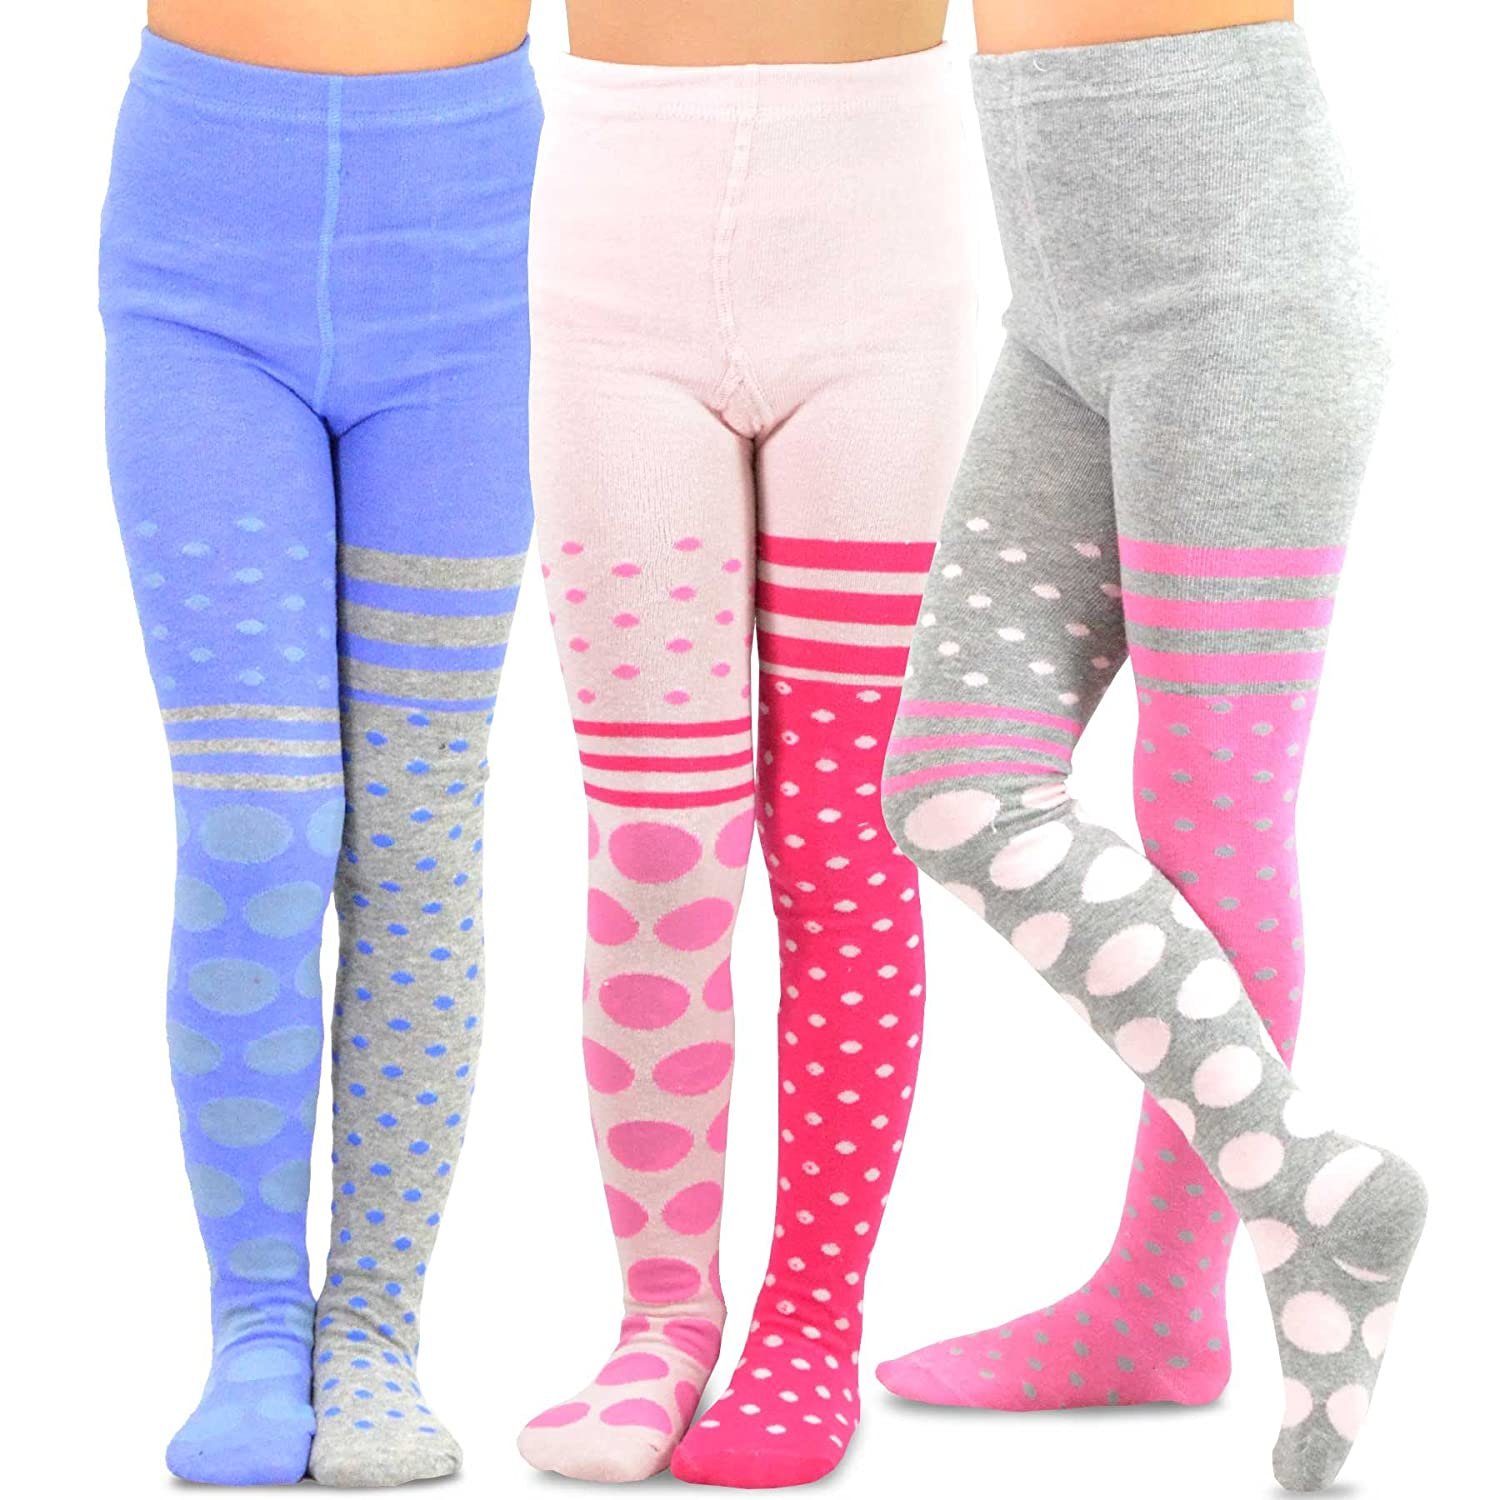 TeeHee Naartjie Kids Girls Fashion Cotton Tights 3 Pair Pack Soxnet Inc